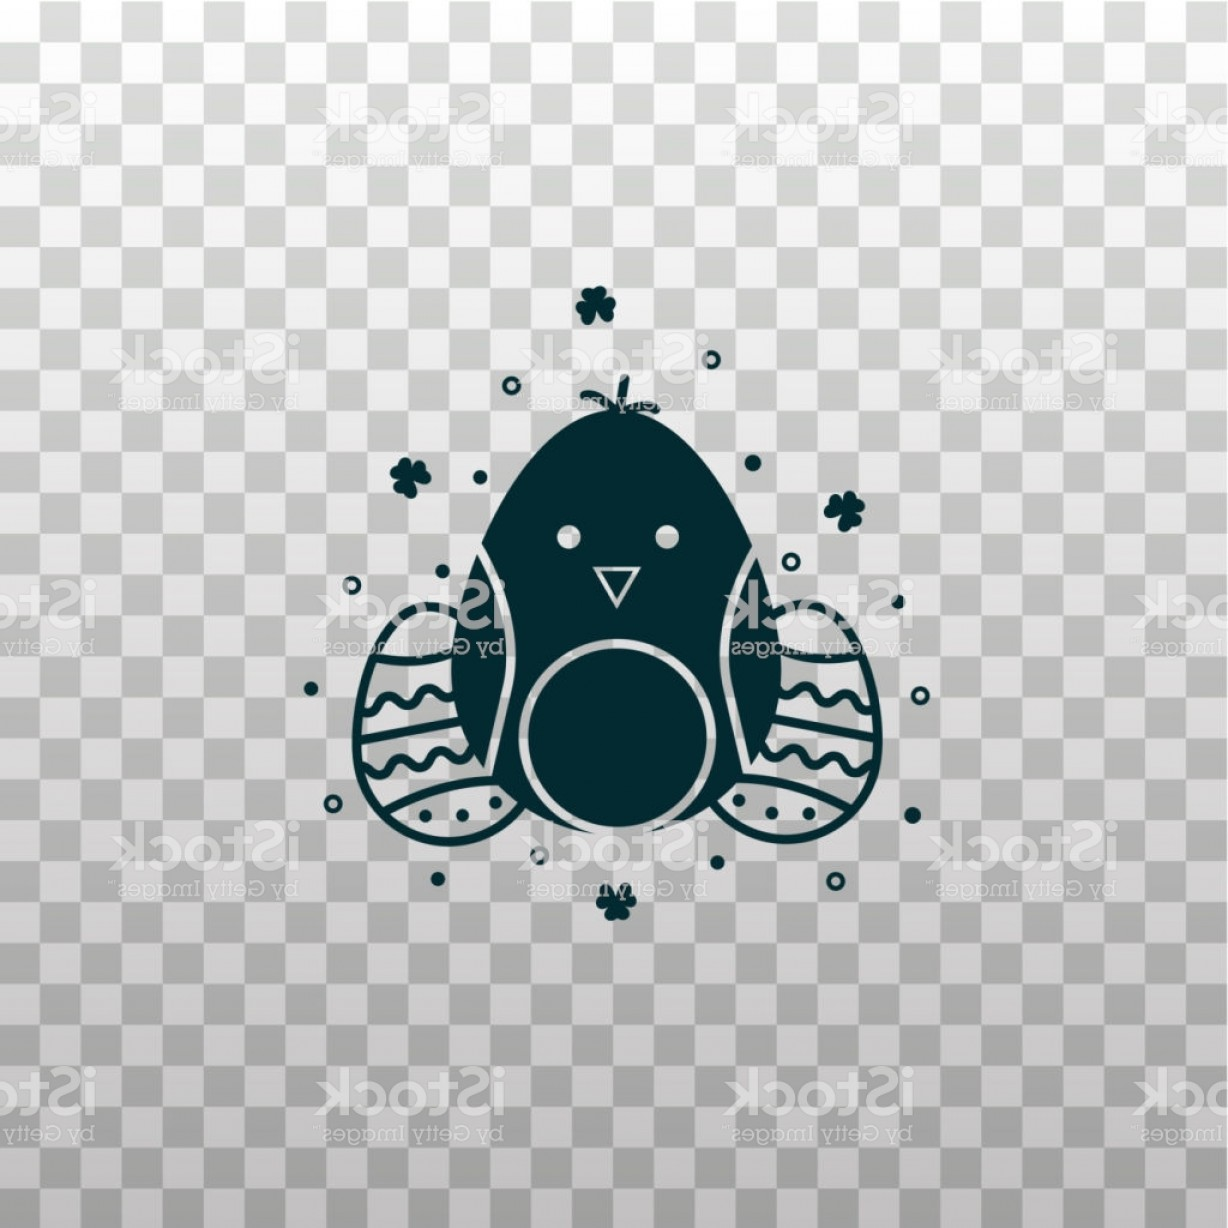 Easter Vector Art No Background: Egg Shaped Easter Chicken Character Emoji Emoticon Black Silhouette Icon On Gm